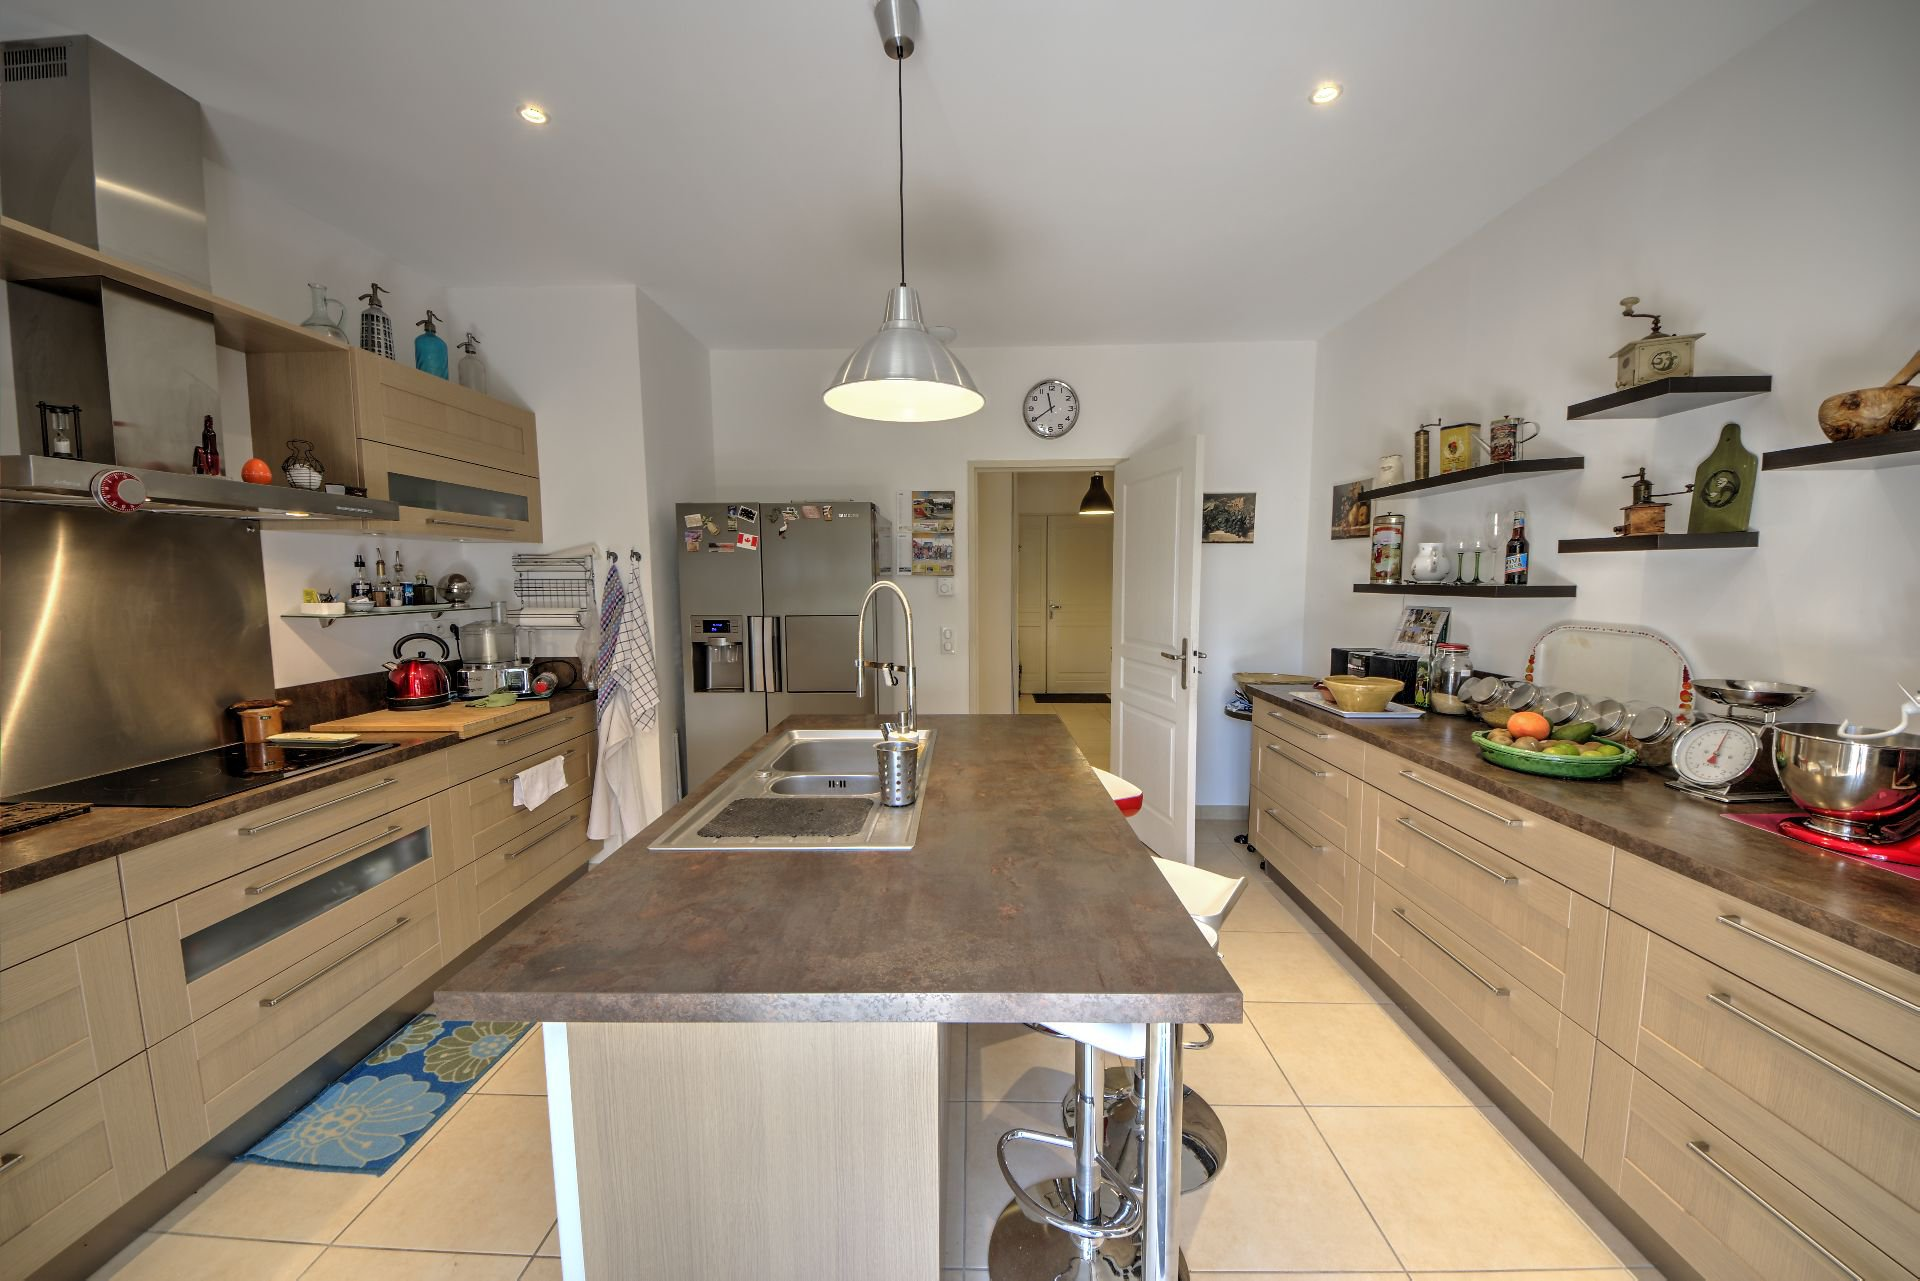 Kitchen with terrace in this quality and bright house with beautiful volumes in Moissac Bellevue Var Provence